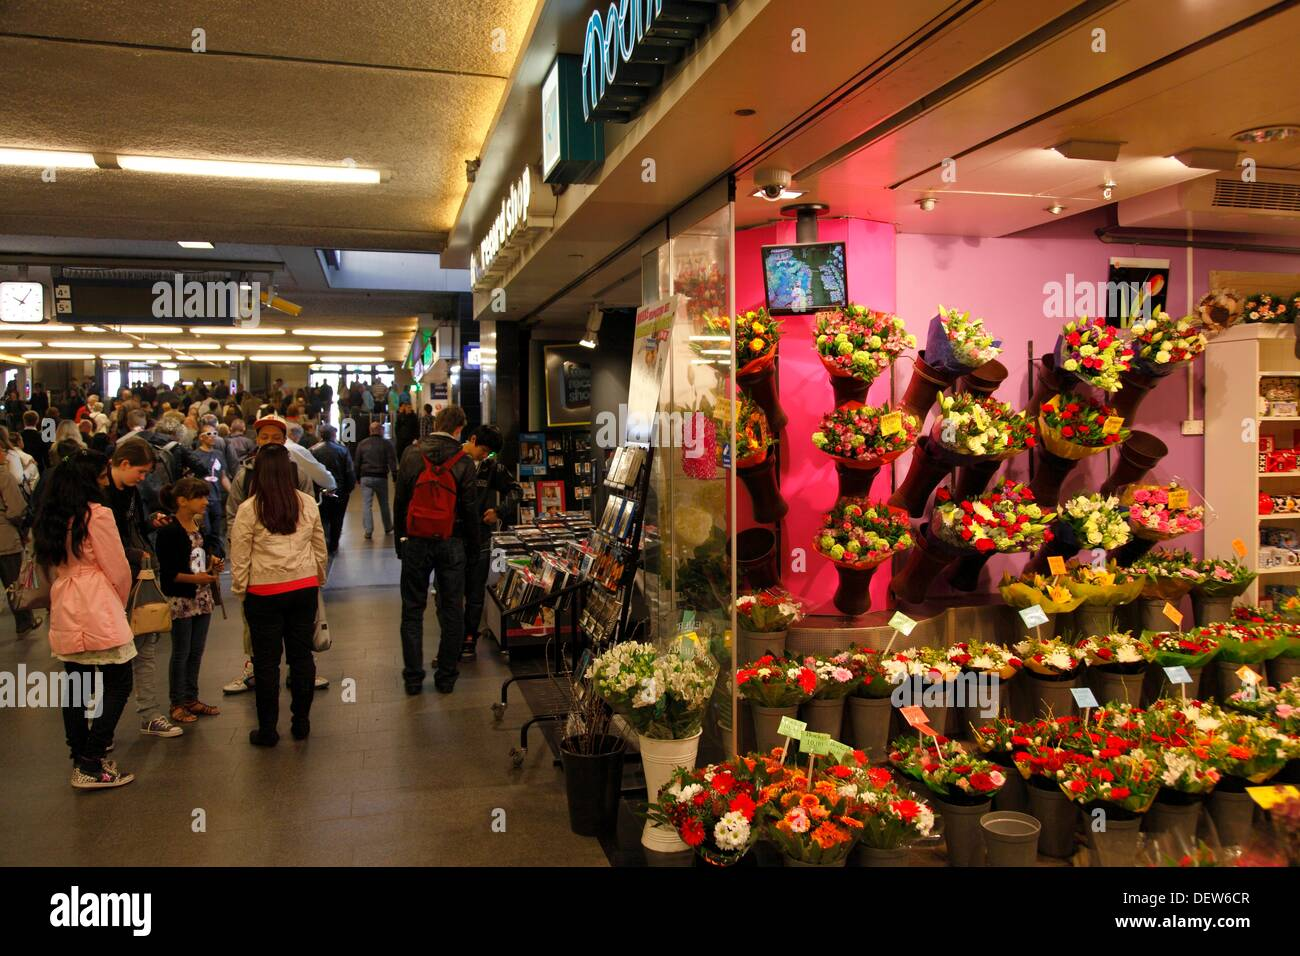 Plant Shop Amsterdam Flowershop Stock Photos And Flowershop Stock Images Alamy